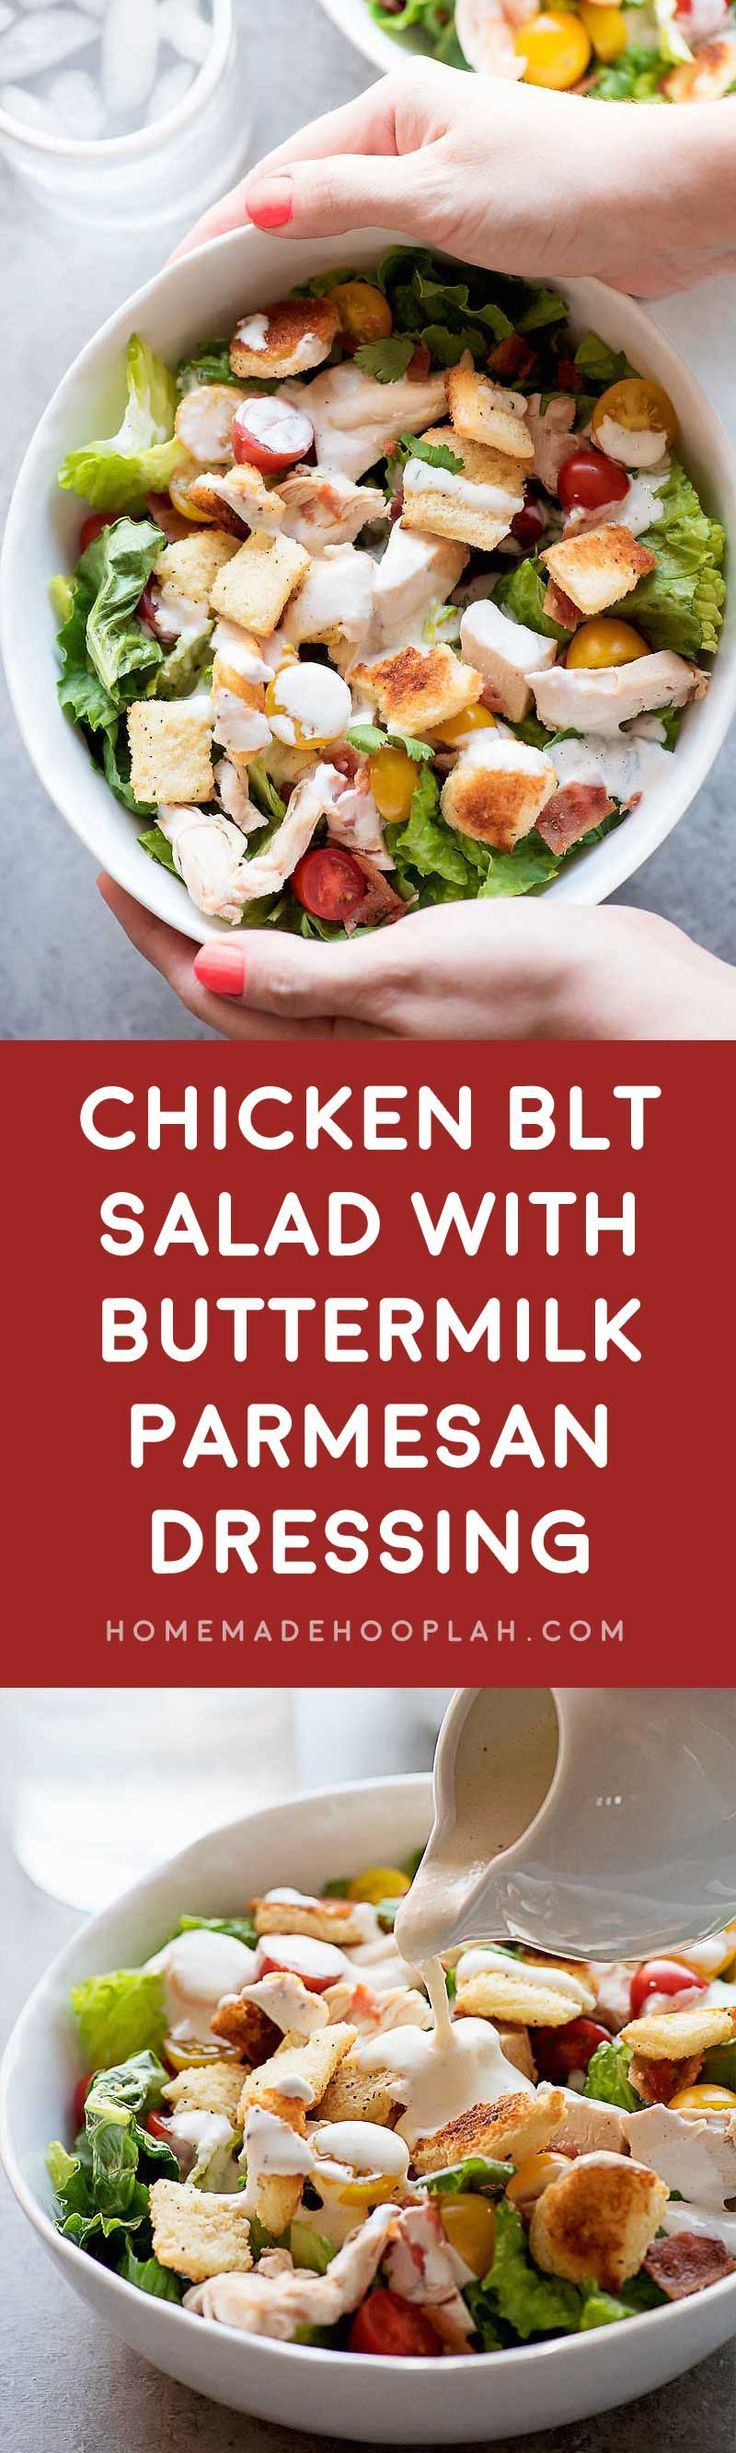 Chicken BLT Salad with Buttermilk-Parmesan Dressing! Tasty chicken, leafy greens, plump tomatoes, crispy bacon, and homemade buttery croutons covered with a rich buttermilk-parmesan dressing. Perfect as a dinner salad or appetizer! | HomemadeHooplah.com